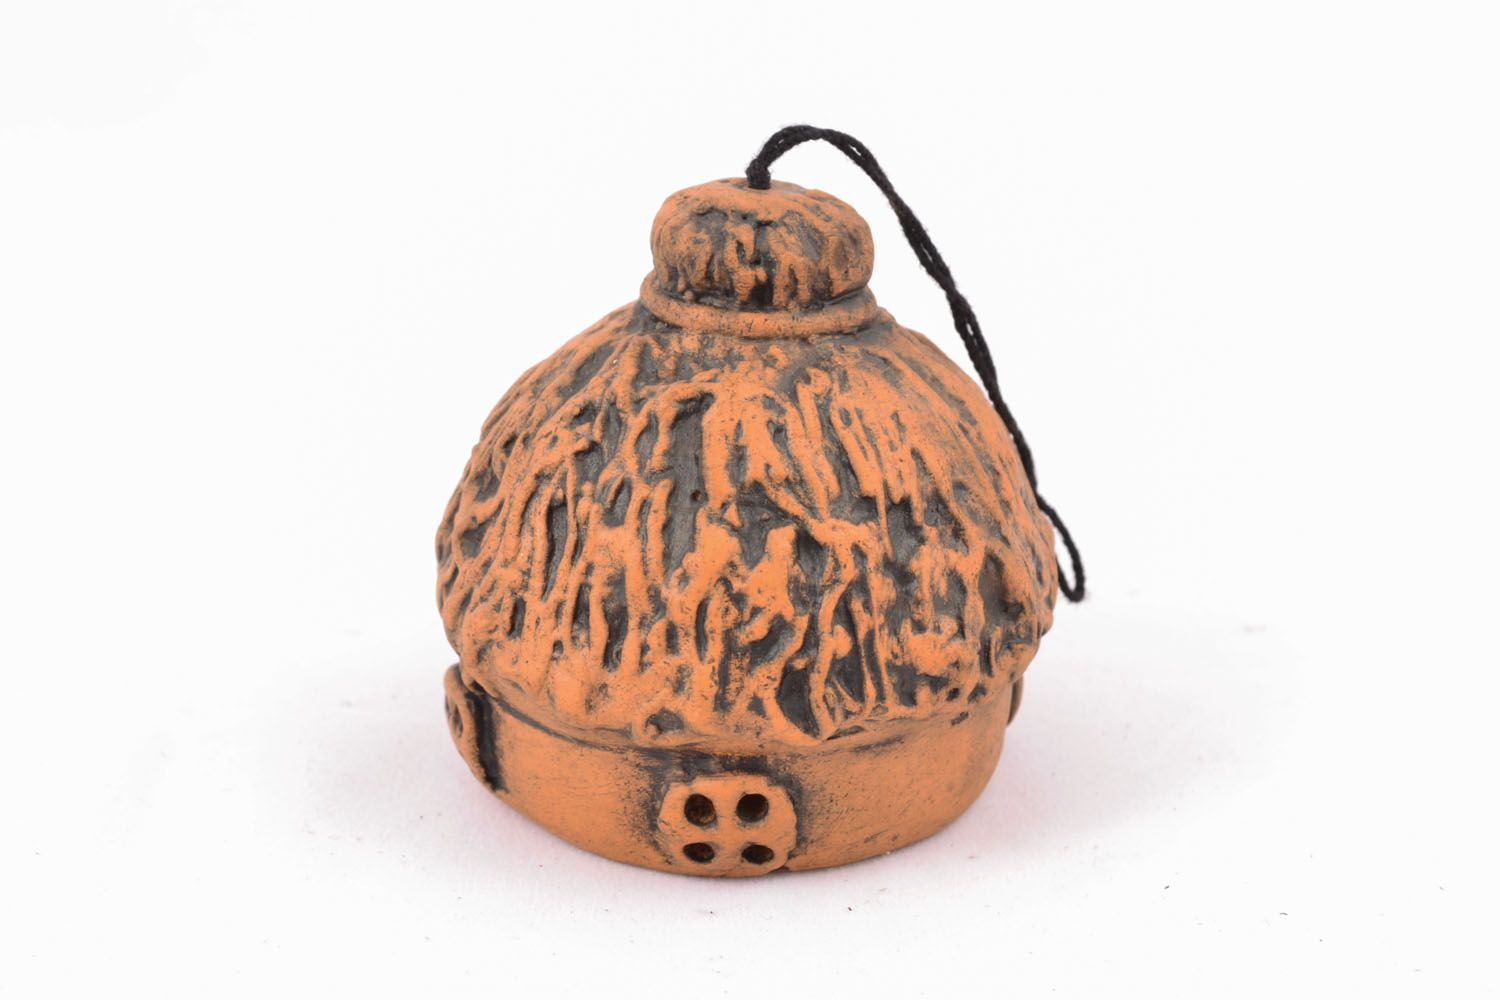 Handmade ceramic bell The Rural House photo 3